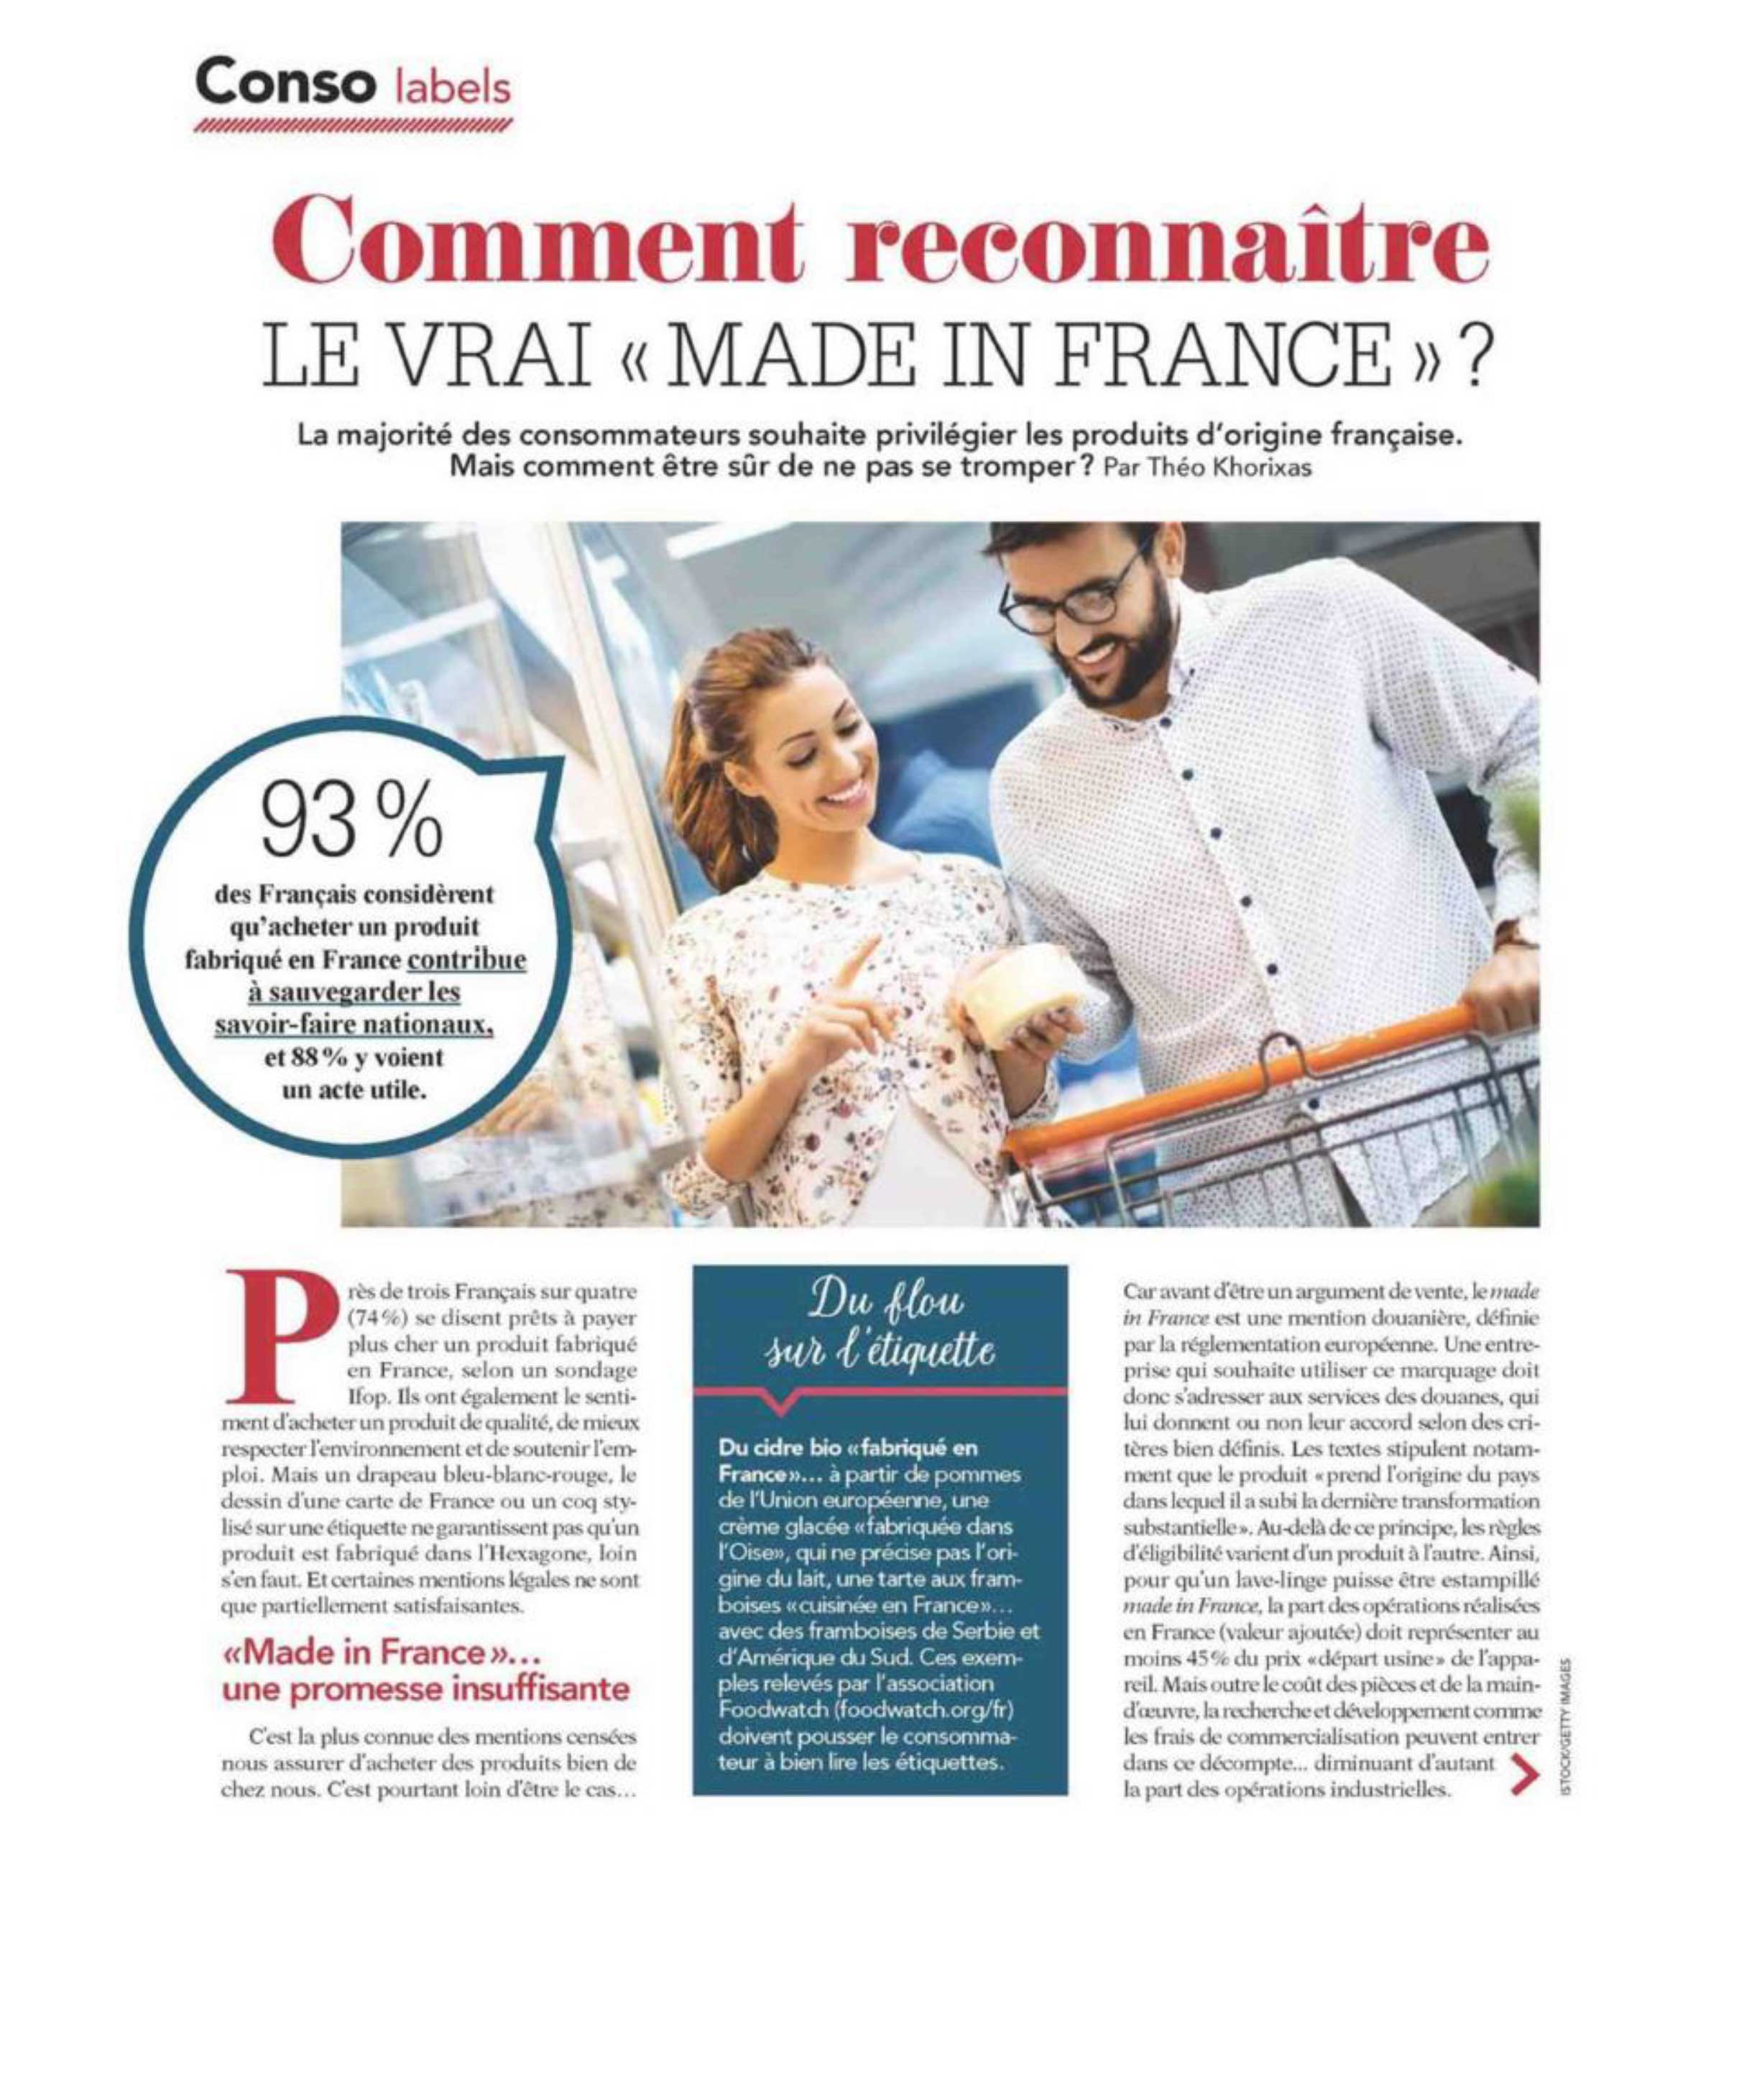 """Comment reconnaître le vrai """"made in France"""" ?"""